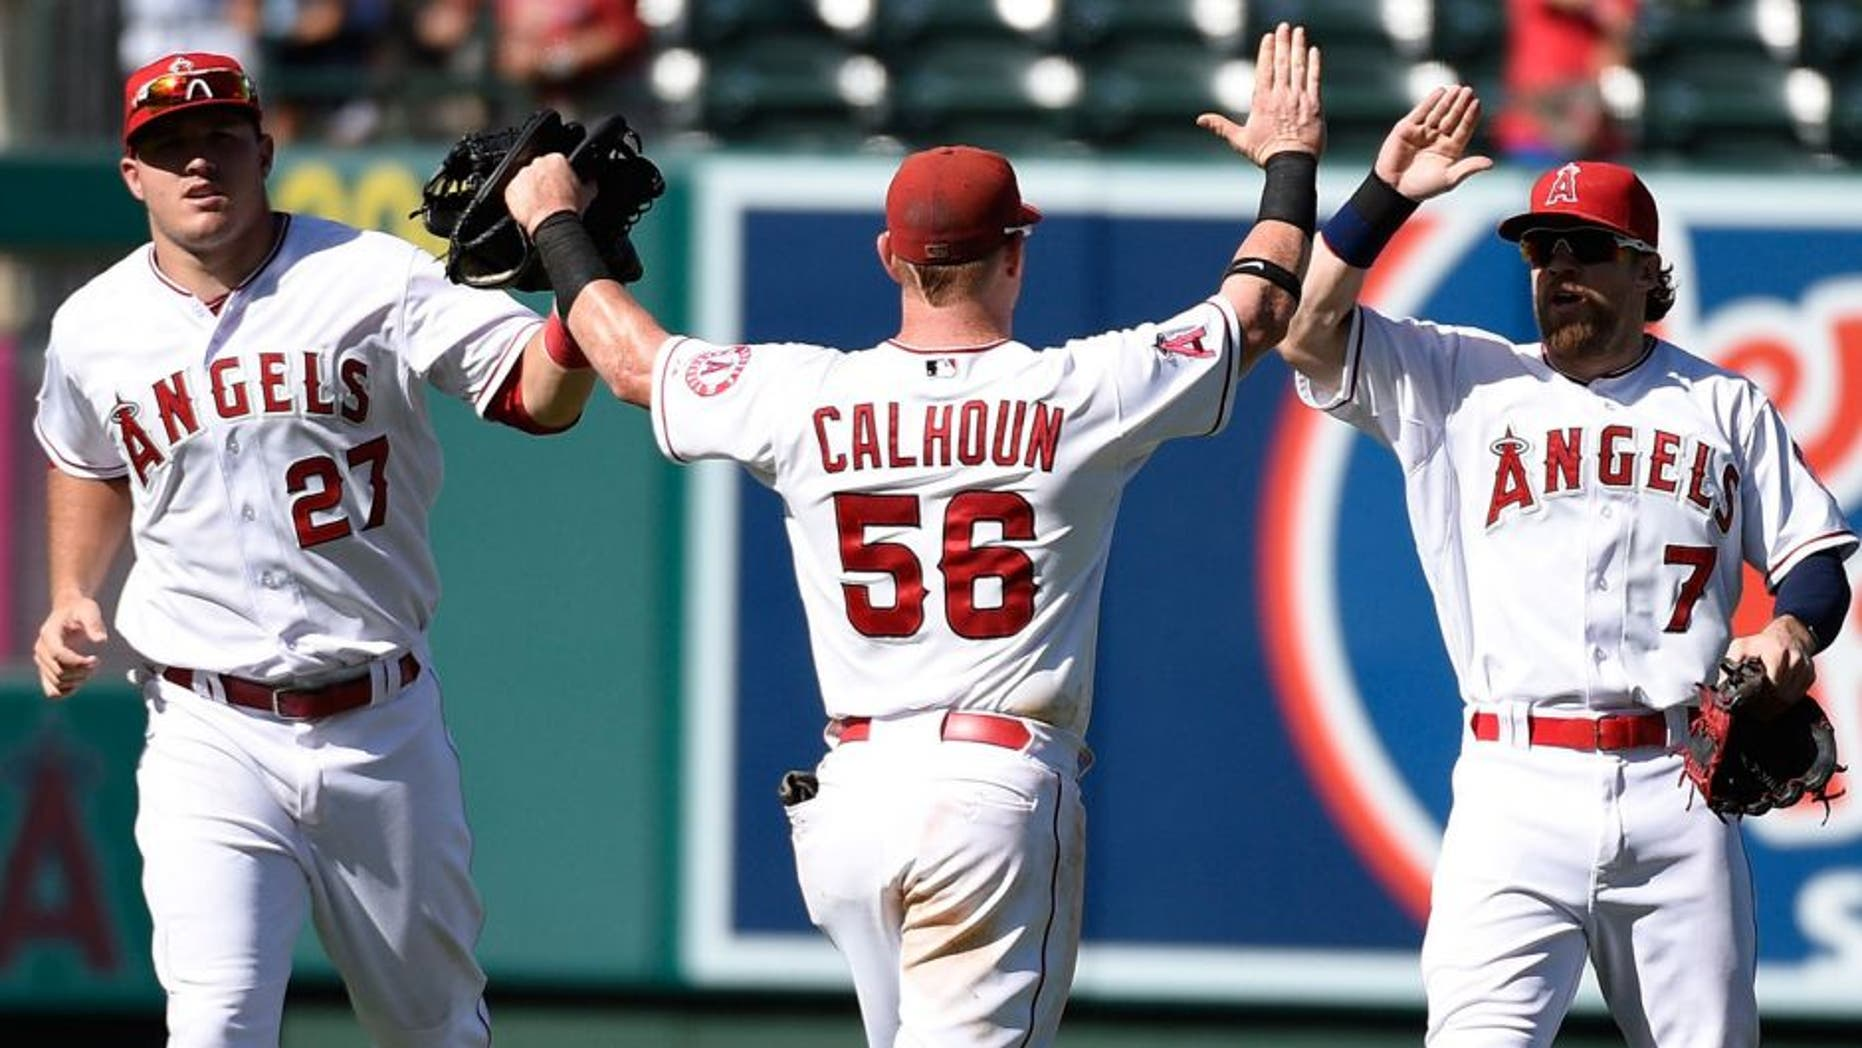 Sep 27, 2015; Anaheim, CA, USA; Los Angeles Angels center fielder Mike Trout (27) and right fielder Kole Calhoun (56) and left fielder Collin Cowgill (right) celebrate after the game against the Seattle Mariners during the ninth inning at Angel Stadium of Anaheim. The Angels won 3-2. Mandatory Credit: Kelvin Kuo-USA TODAY Sports